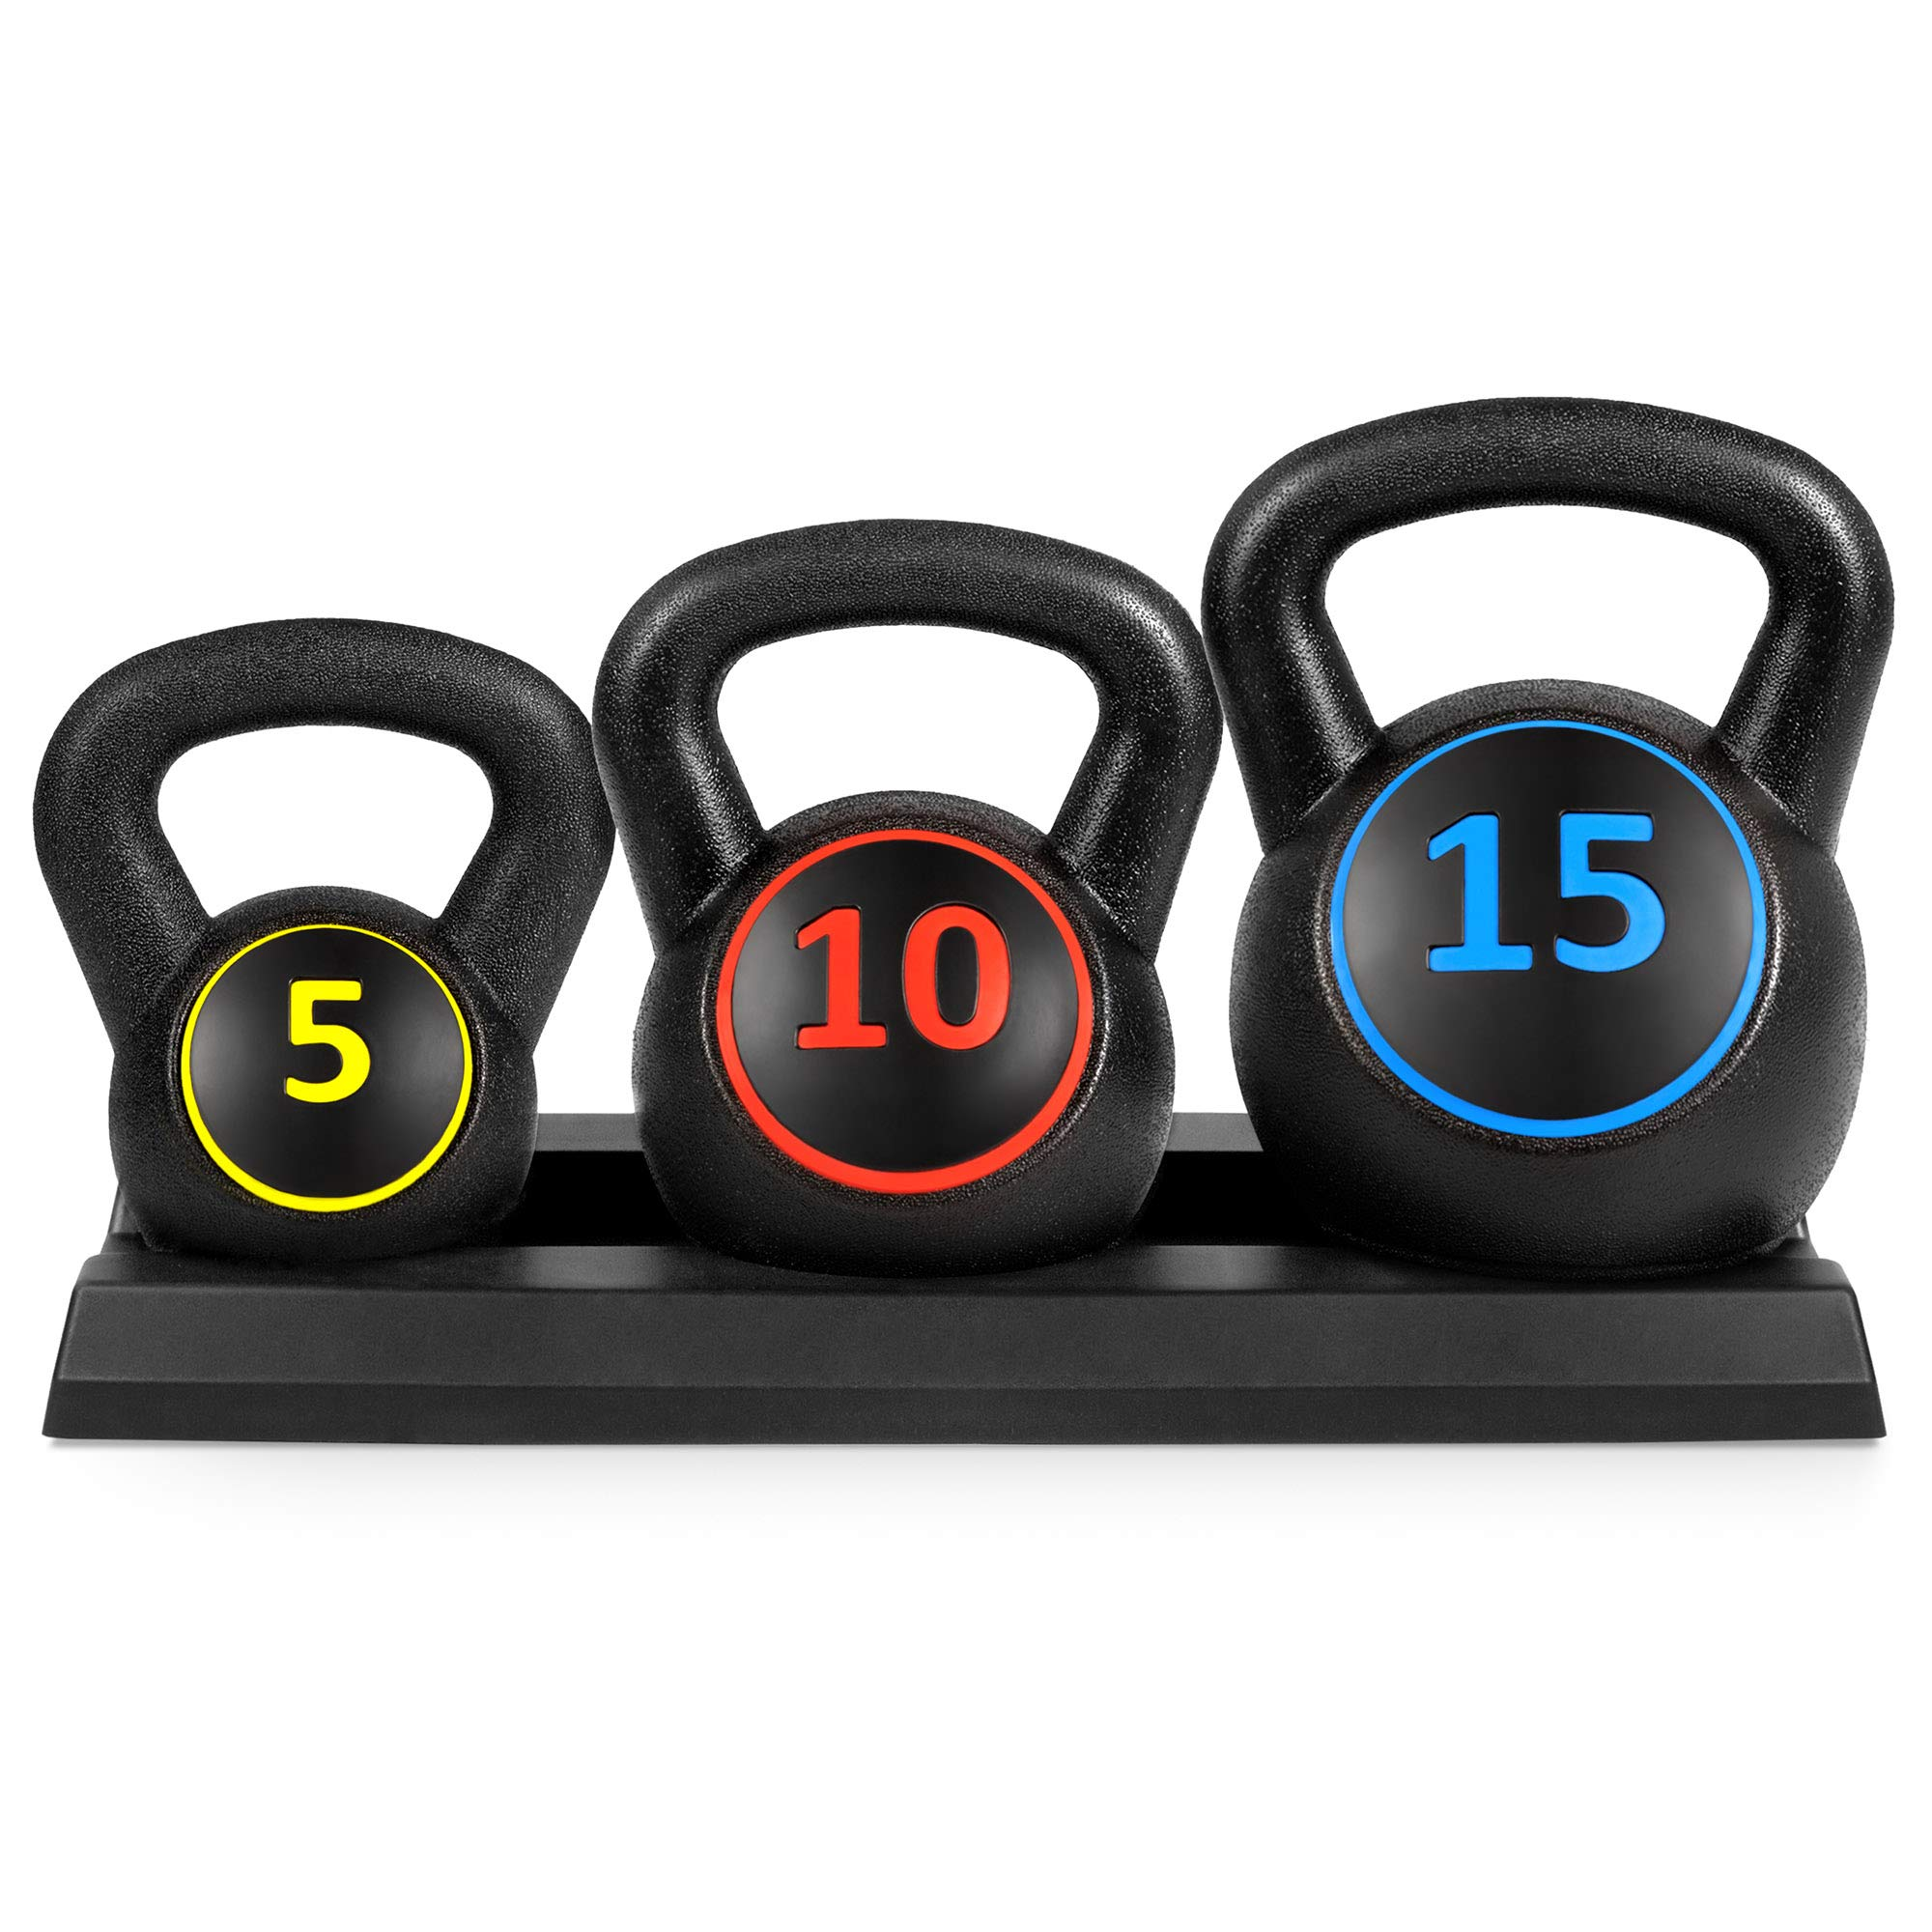 Amazon.com: Dumbells Weights Set for Women Dumbbell with